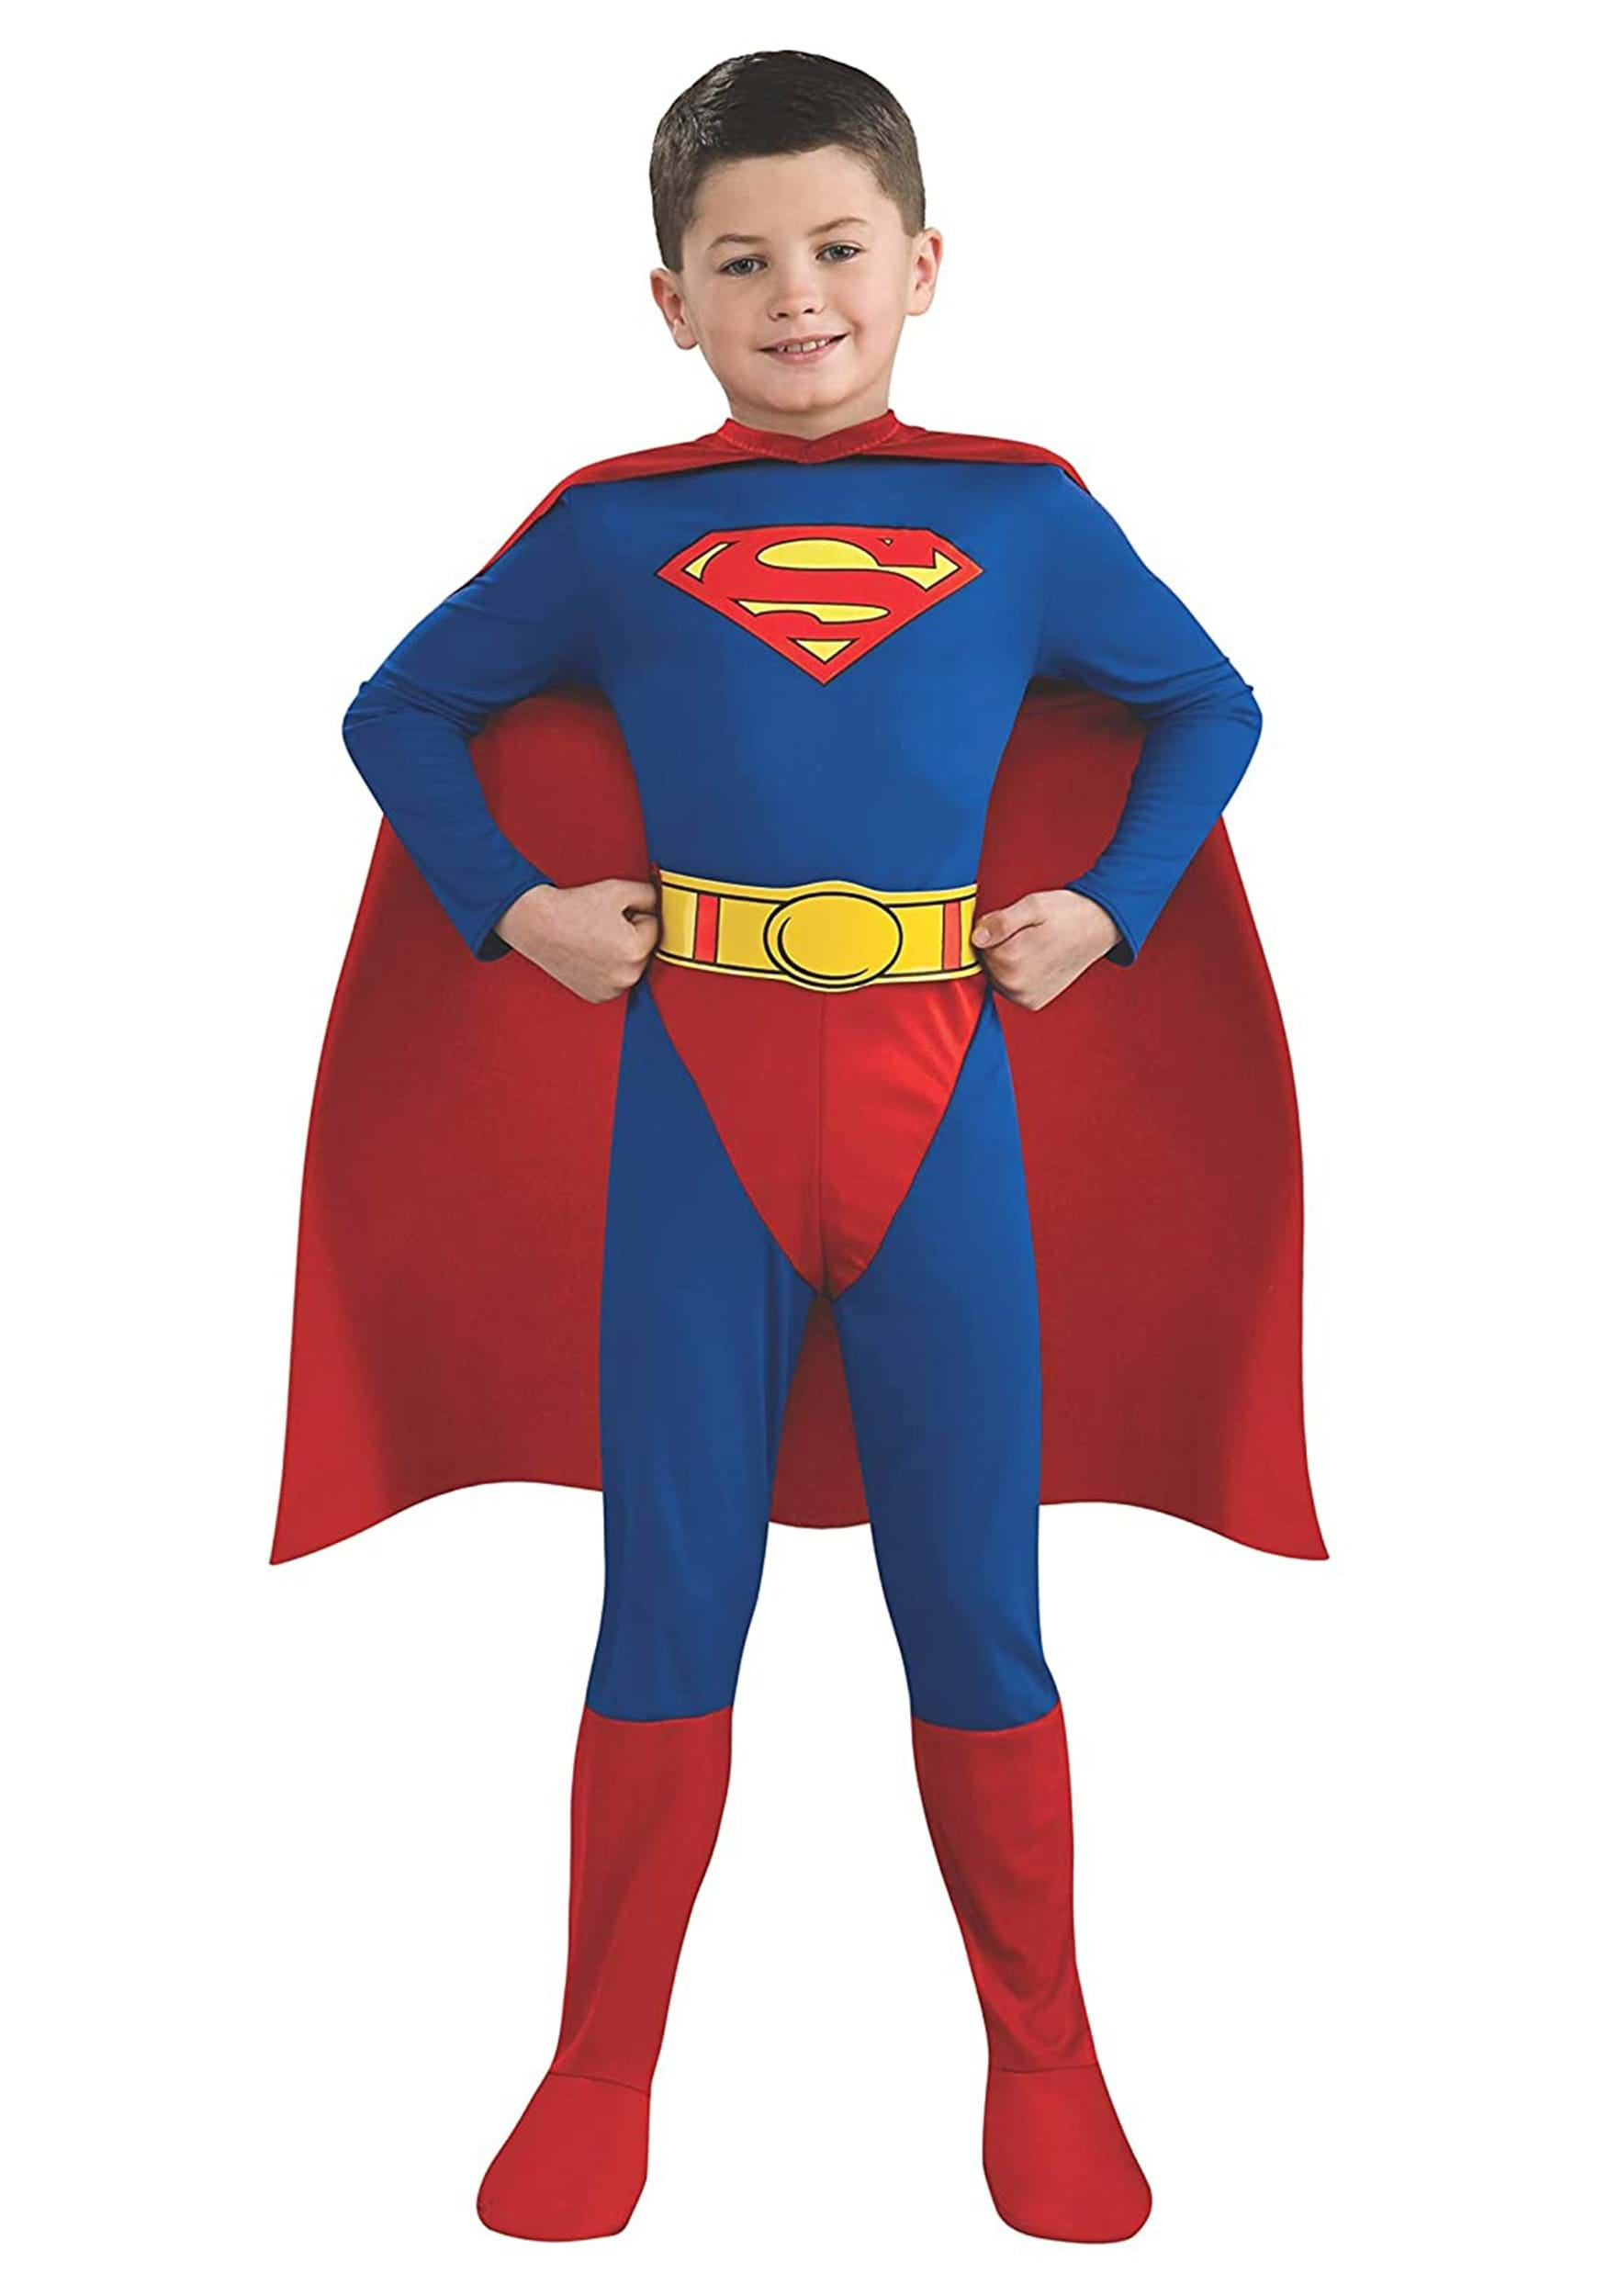 Shop Halloween Costumes and accessories for Girls, Boys, Women & Men at Wonder Costumes. See the latest Costumes, Accessories and Decorations on sale.